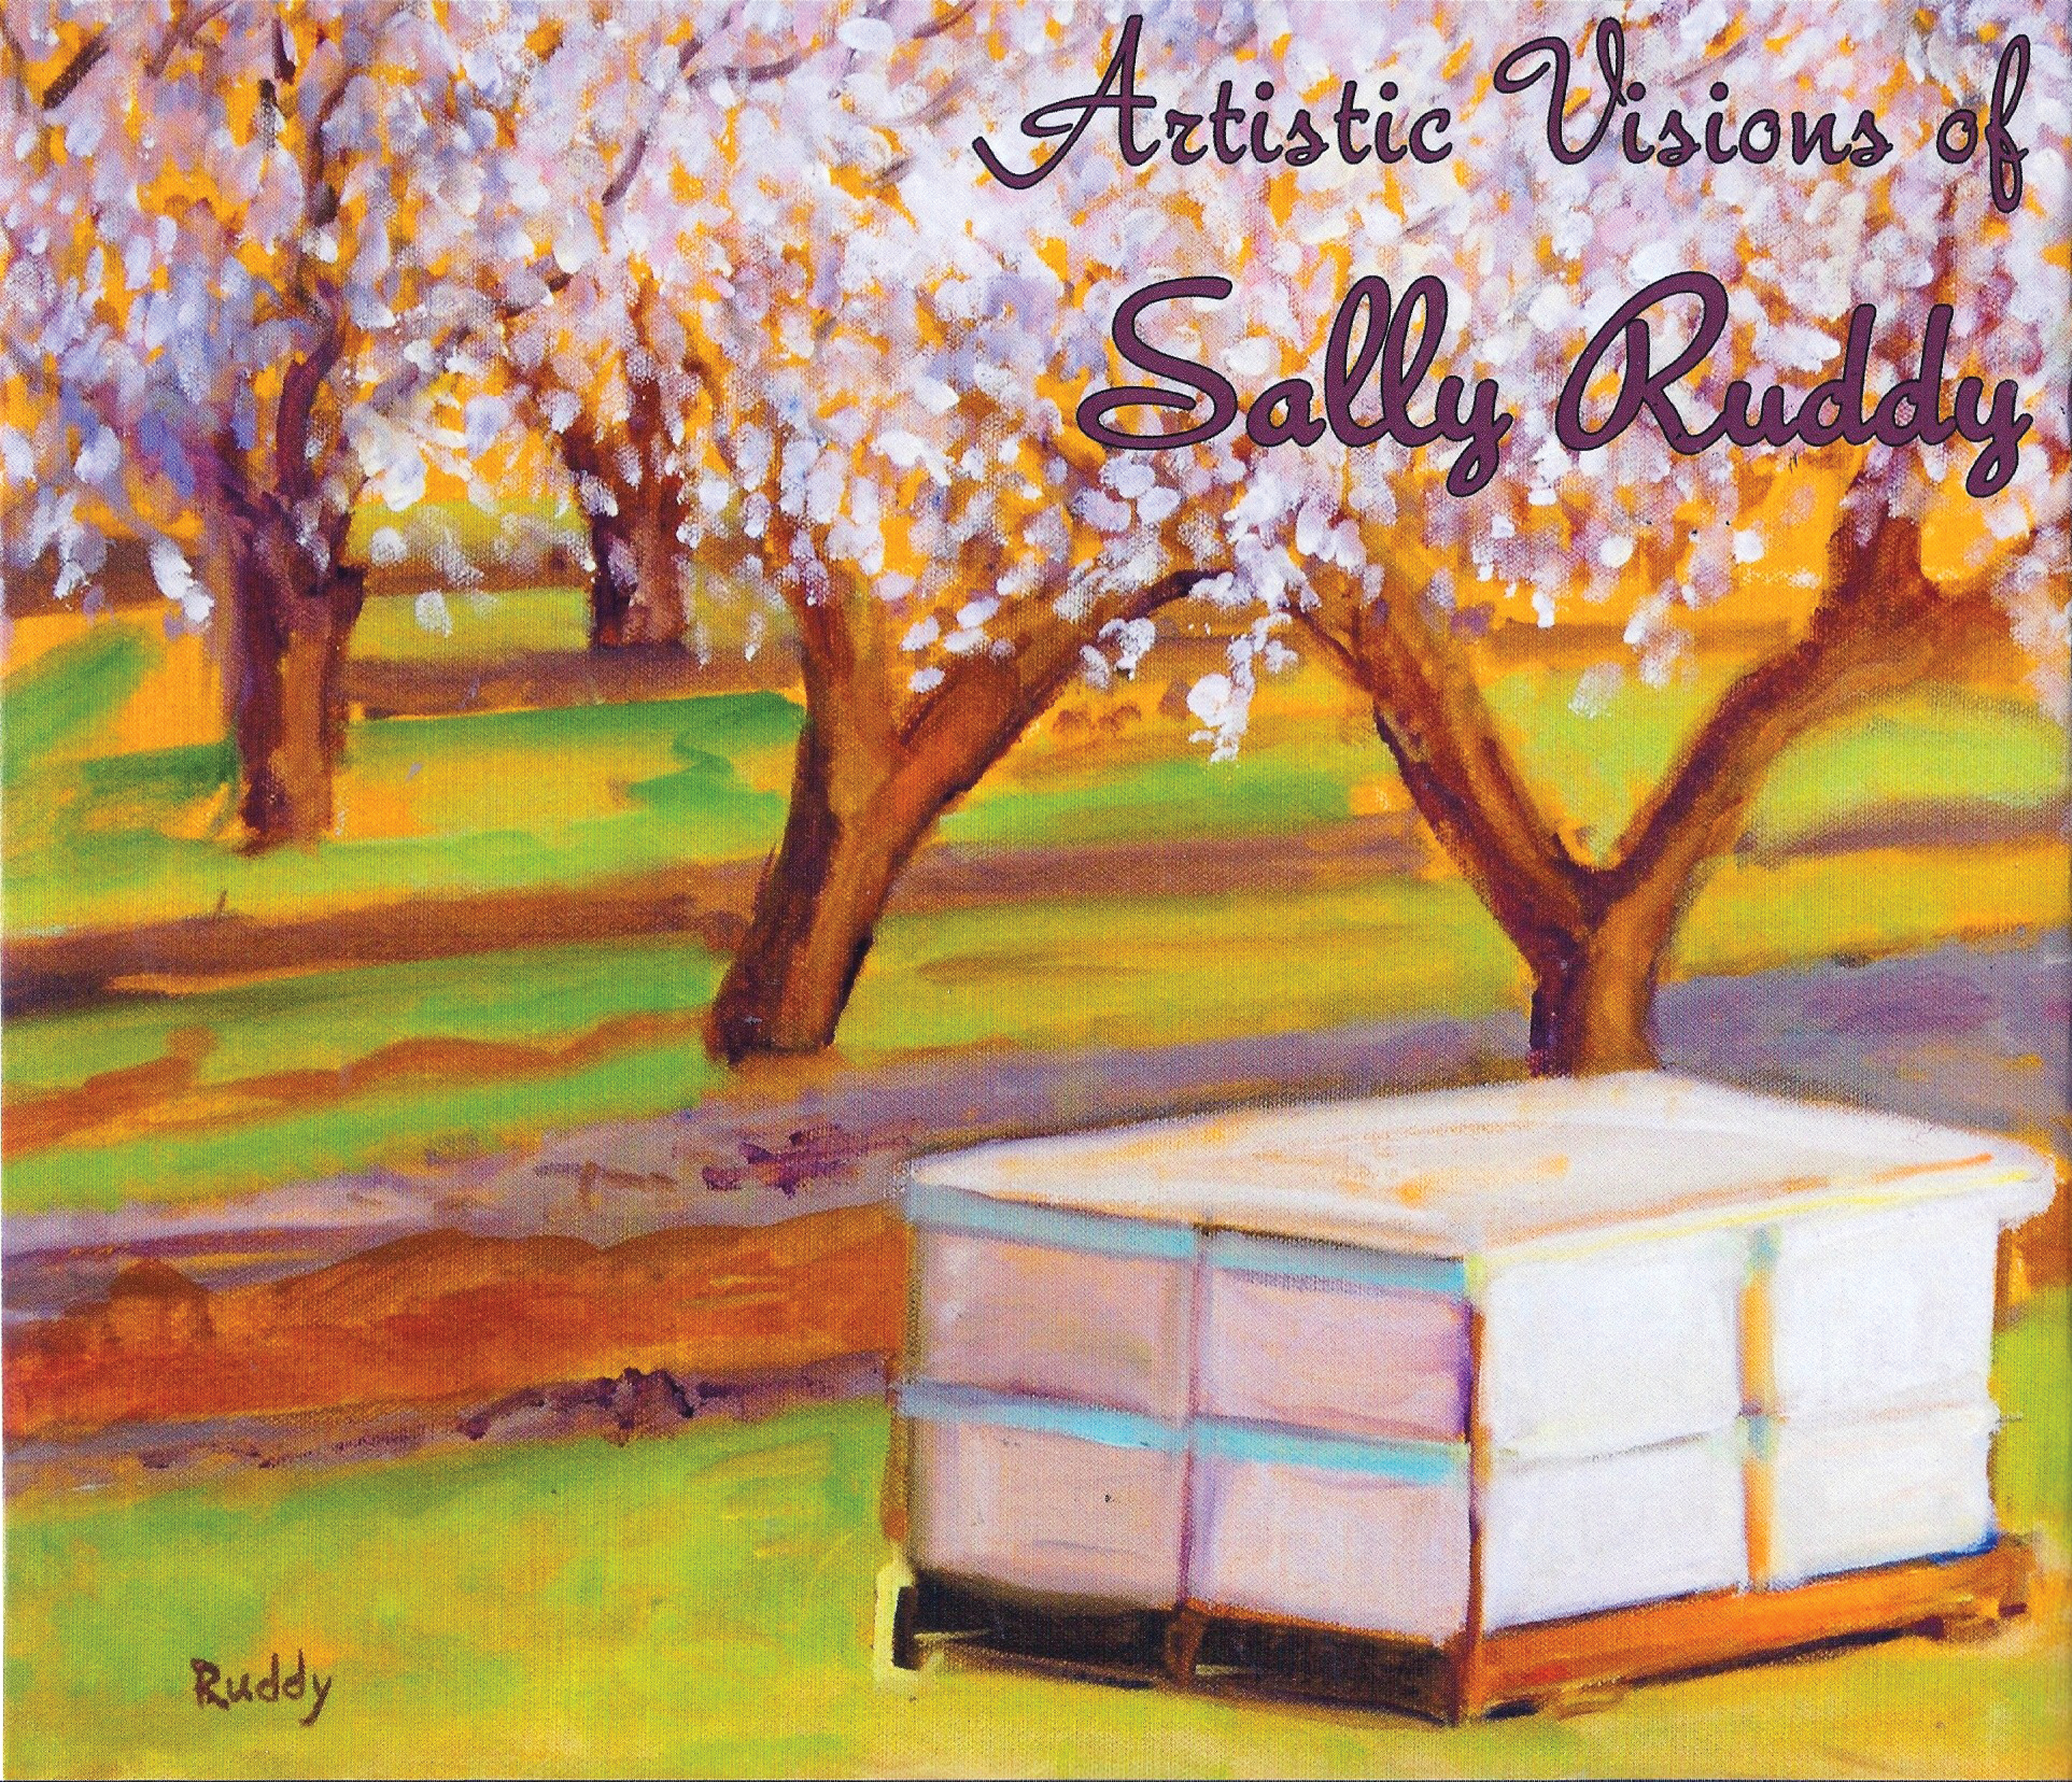 Artistic Visions of Sally Ruddy